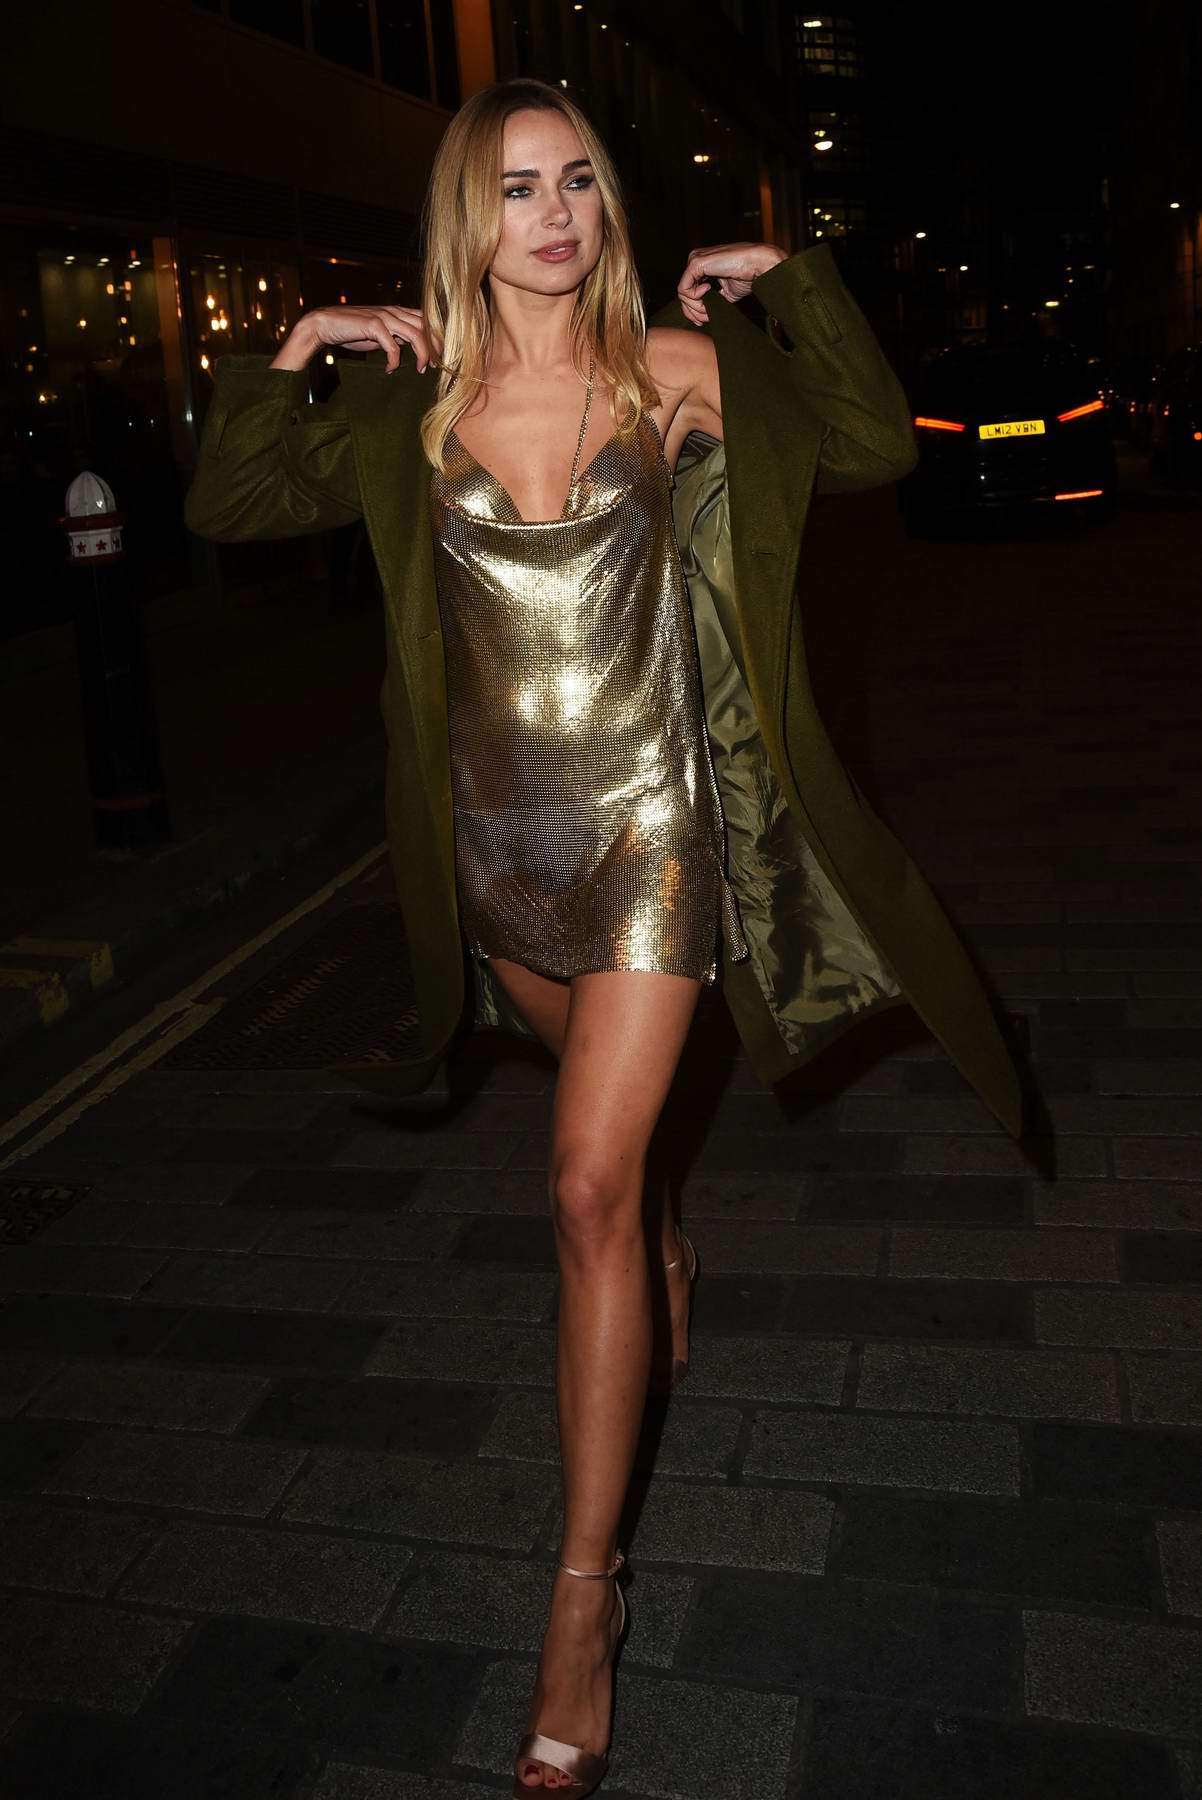 Kimberley Garner at the launch of The Winter Forest with Ciroc in London